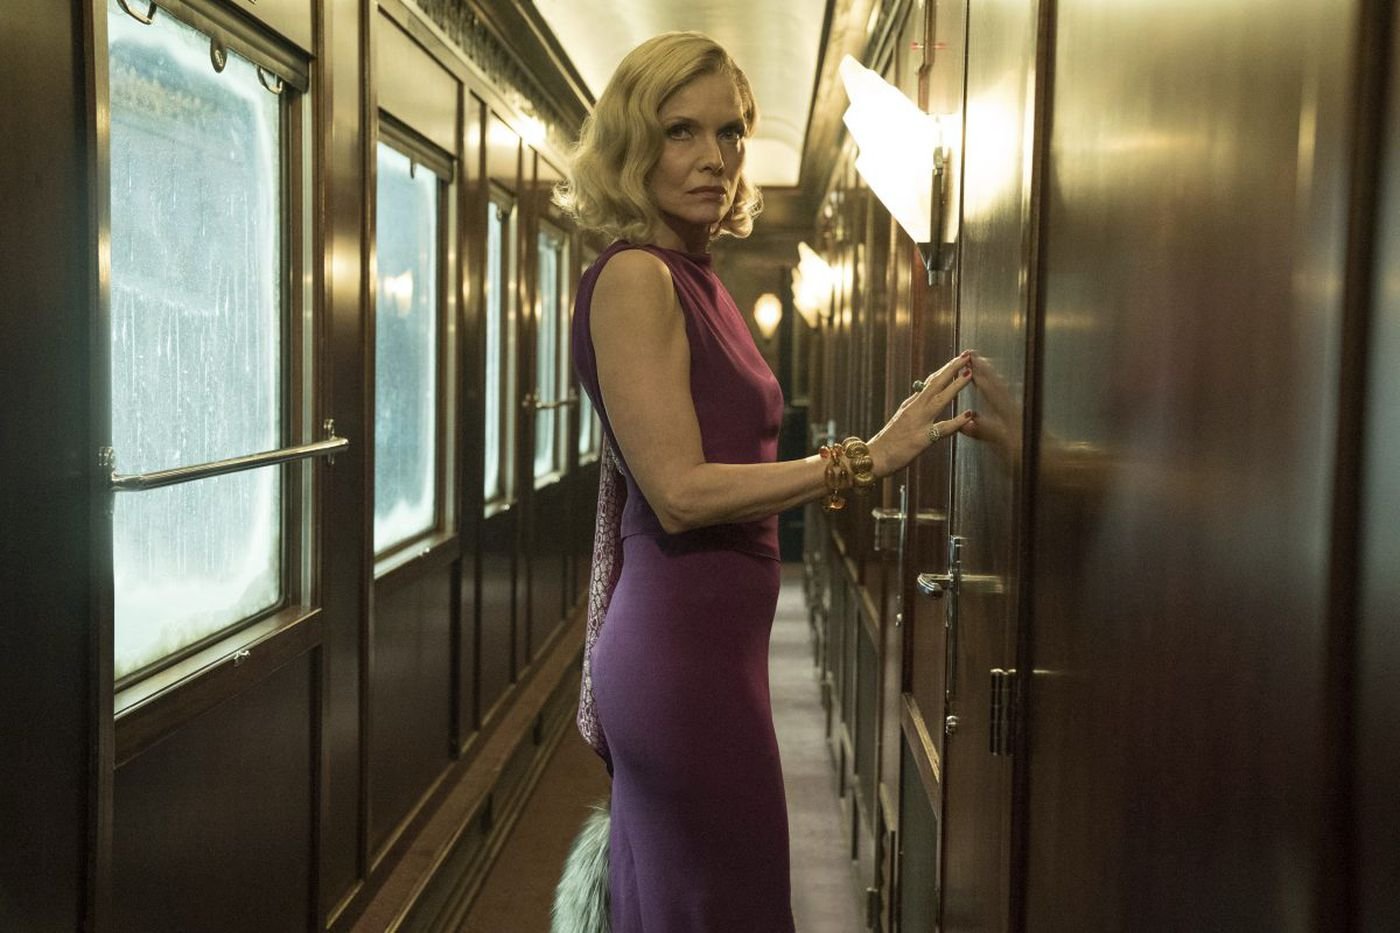 'Murder on the Orient Express': Agatha Christie's mystery gets a showy, star-studded remake